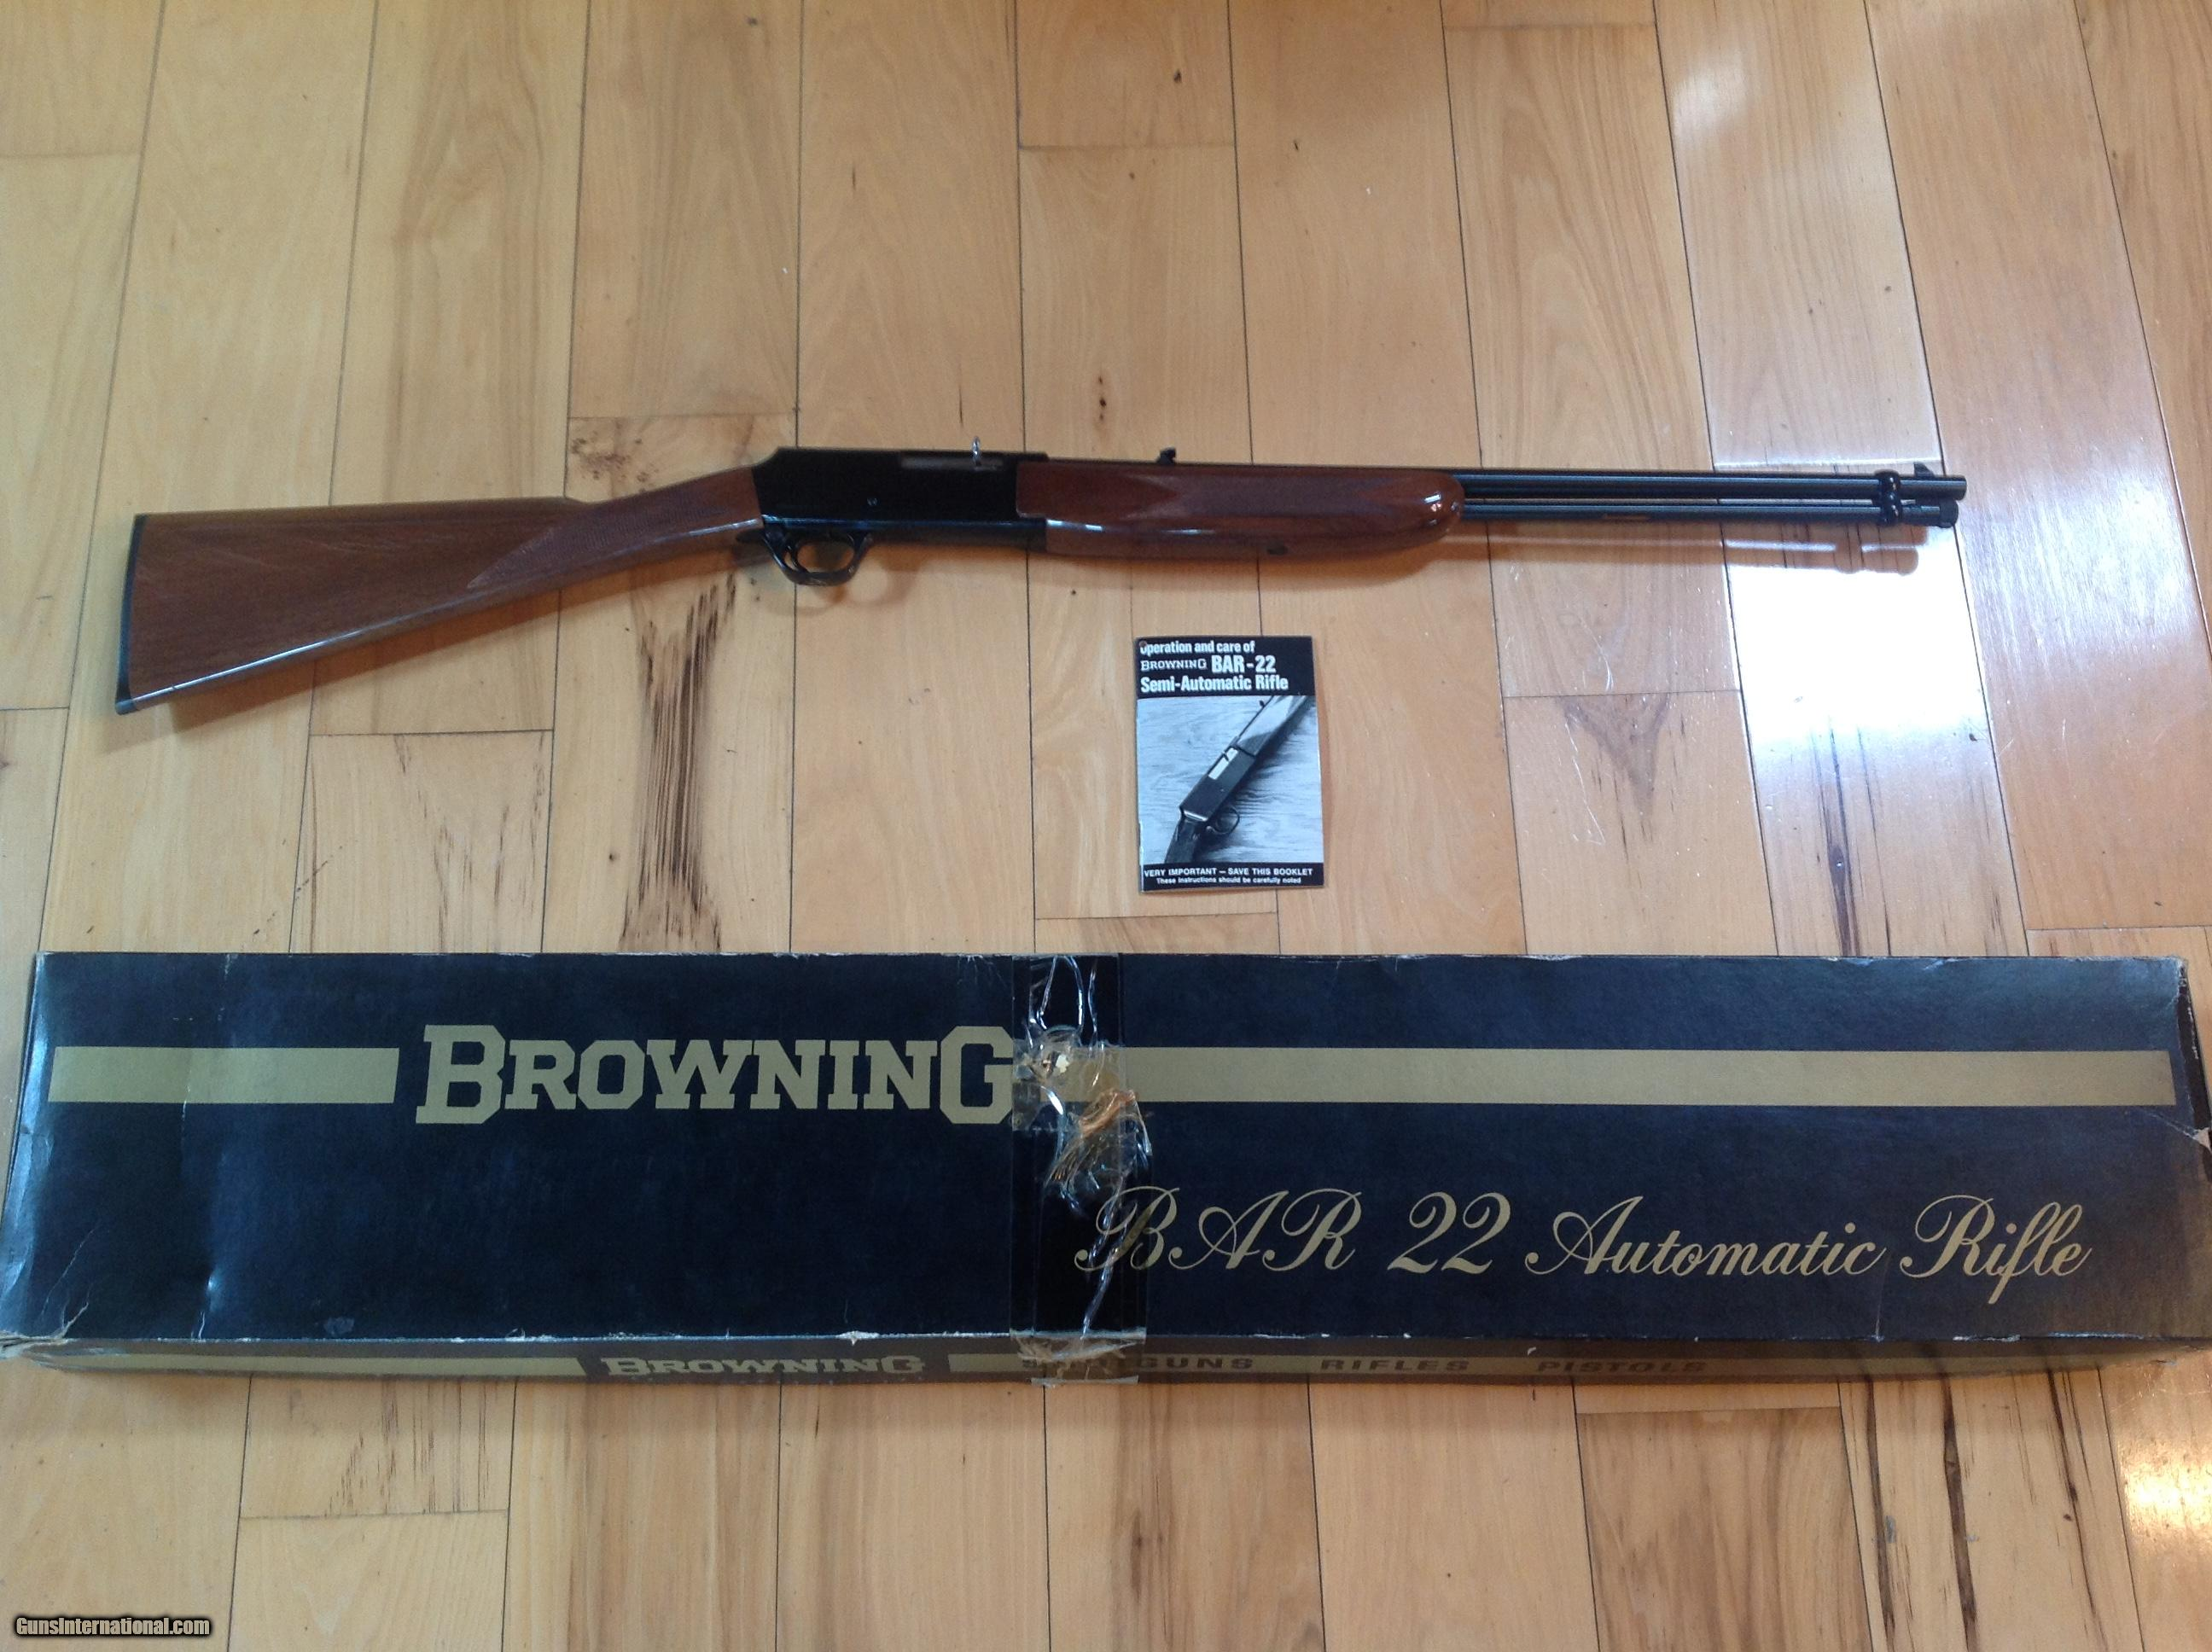 browning bar 22 lr new unfired in box with owners manual rh gunsinternational com browning gold hunter 12 gauge owner's manual browning gold hunter 3 1 2 owners manual